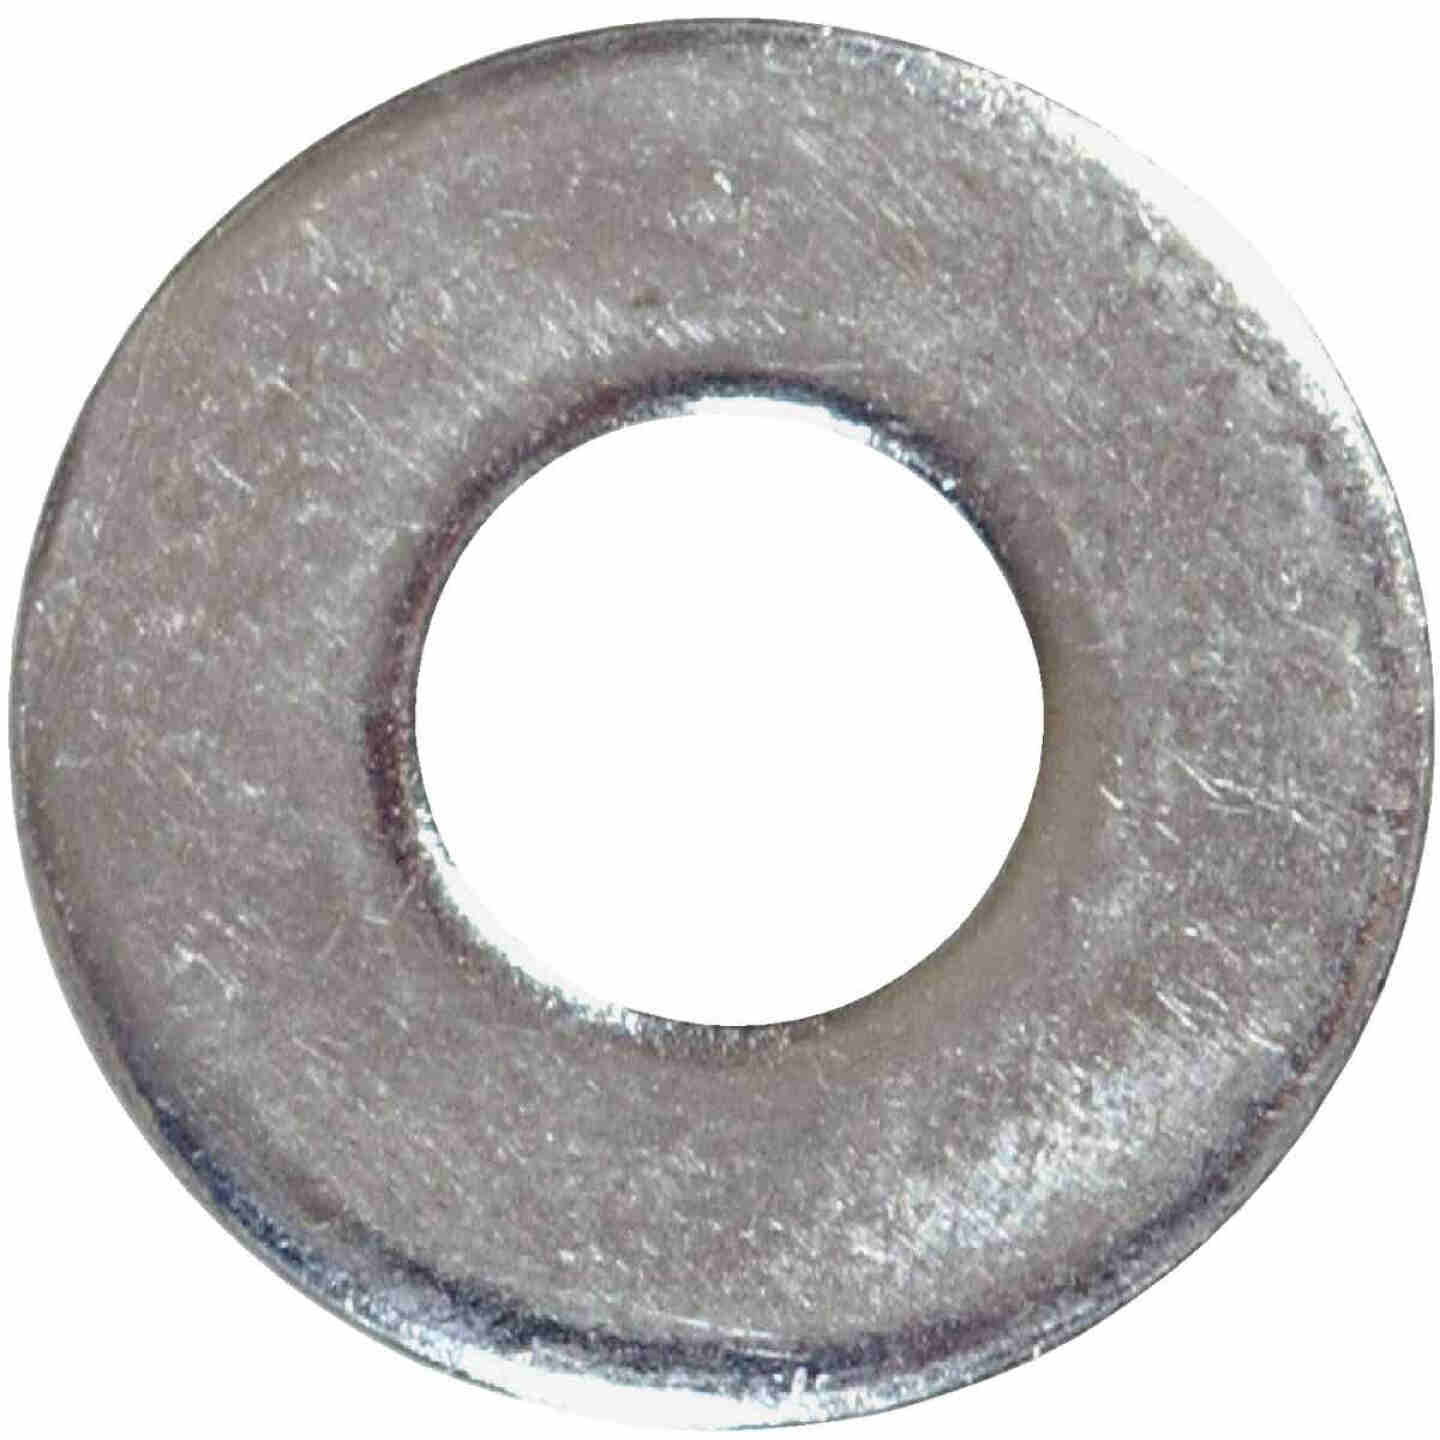 Hillman 1/4 In. Steel Zinc Plated Flat USS Washer (745 Ct., 5 Lb.) Image 1